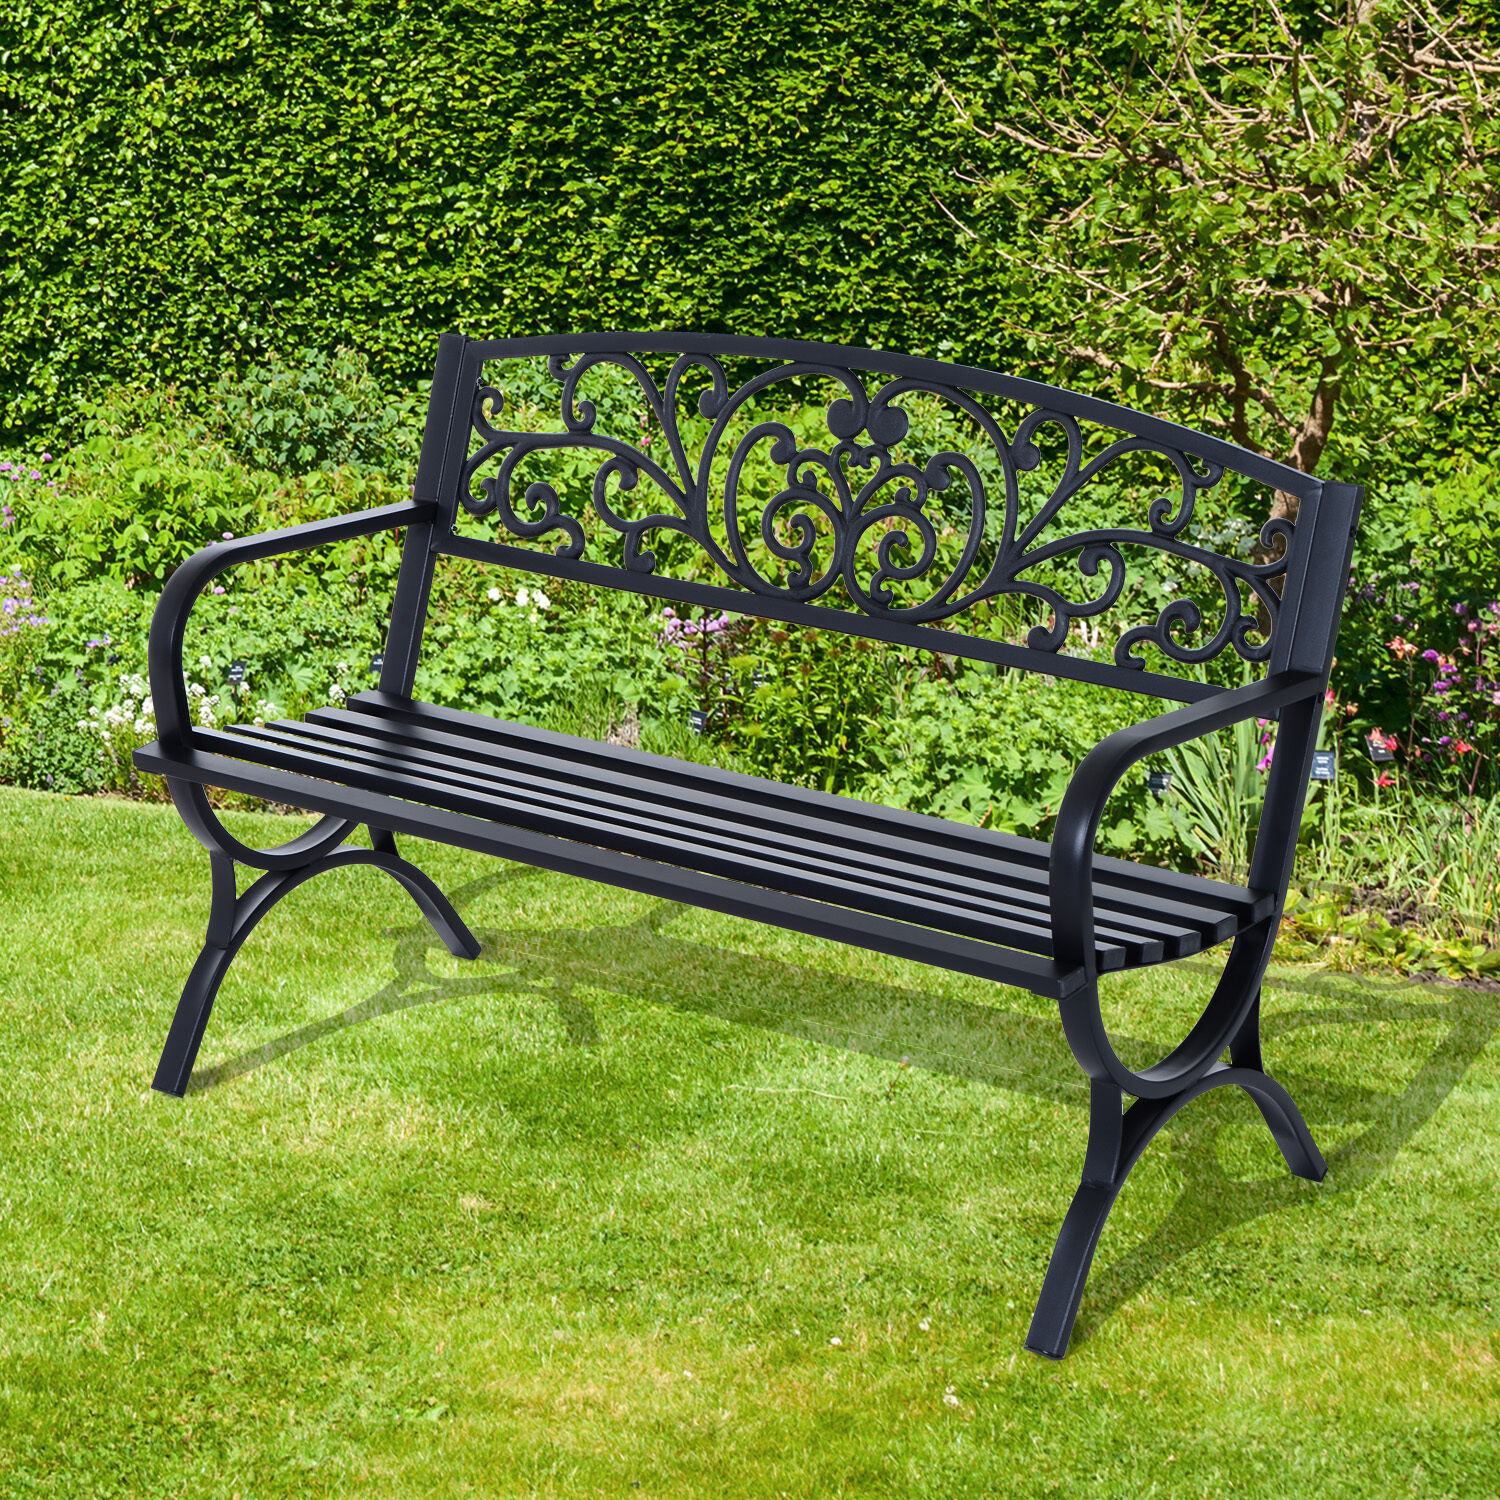 outsunny gartenbank sitzbank blumenbank metall gartenm bel 2 sitzer schwarz eur 74 90. Black Bedroom Furniture Sets. Home Design Ideas